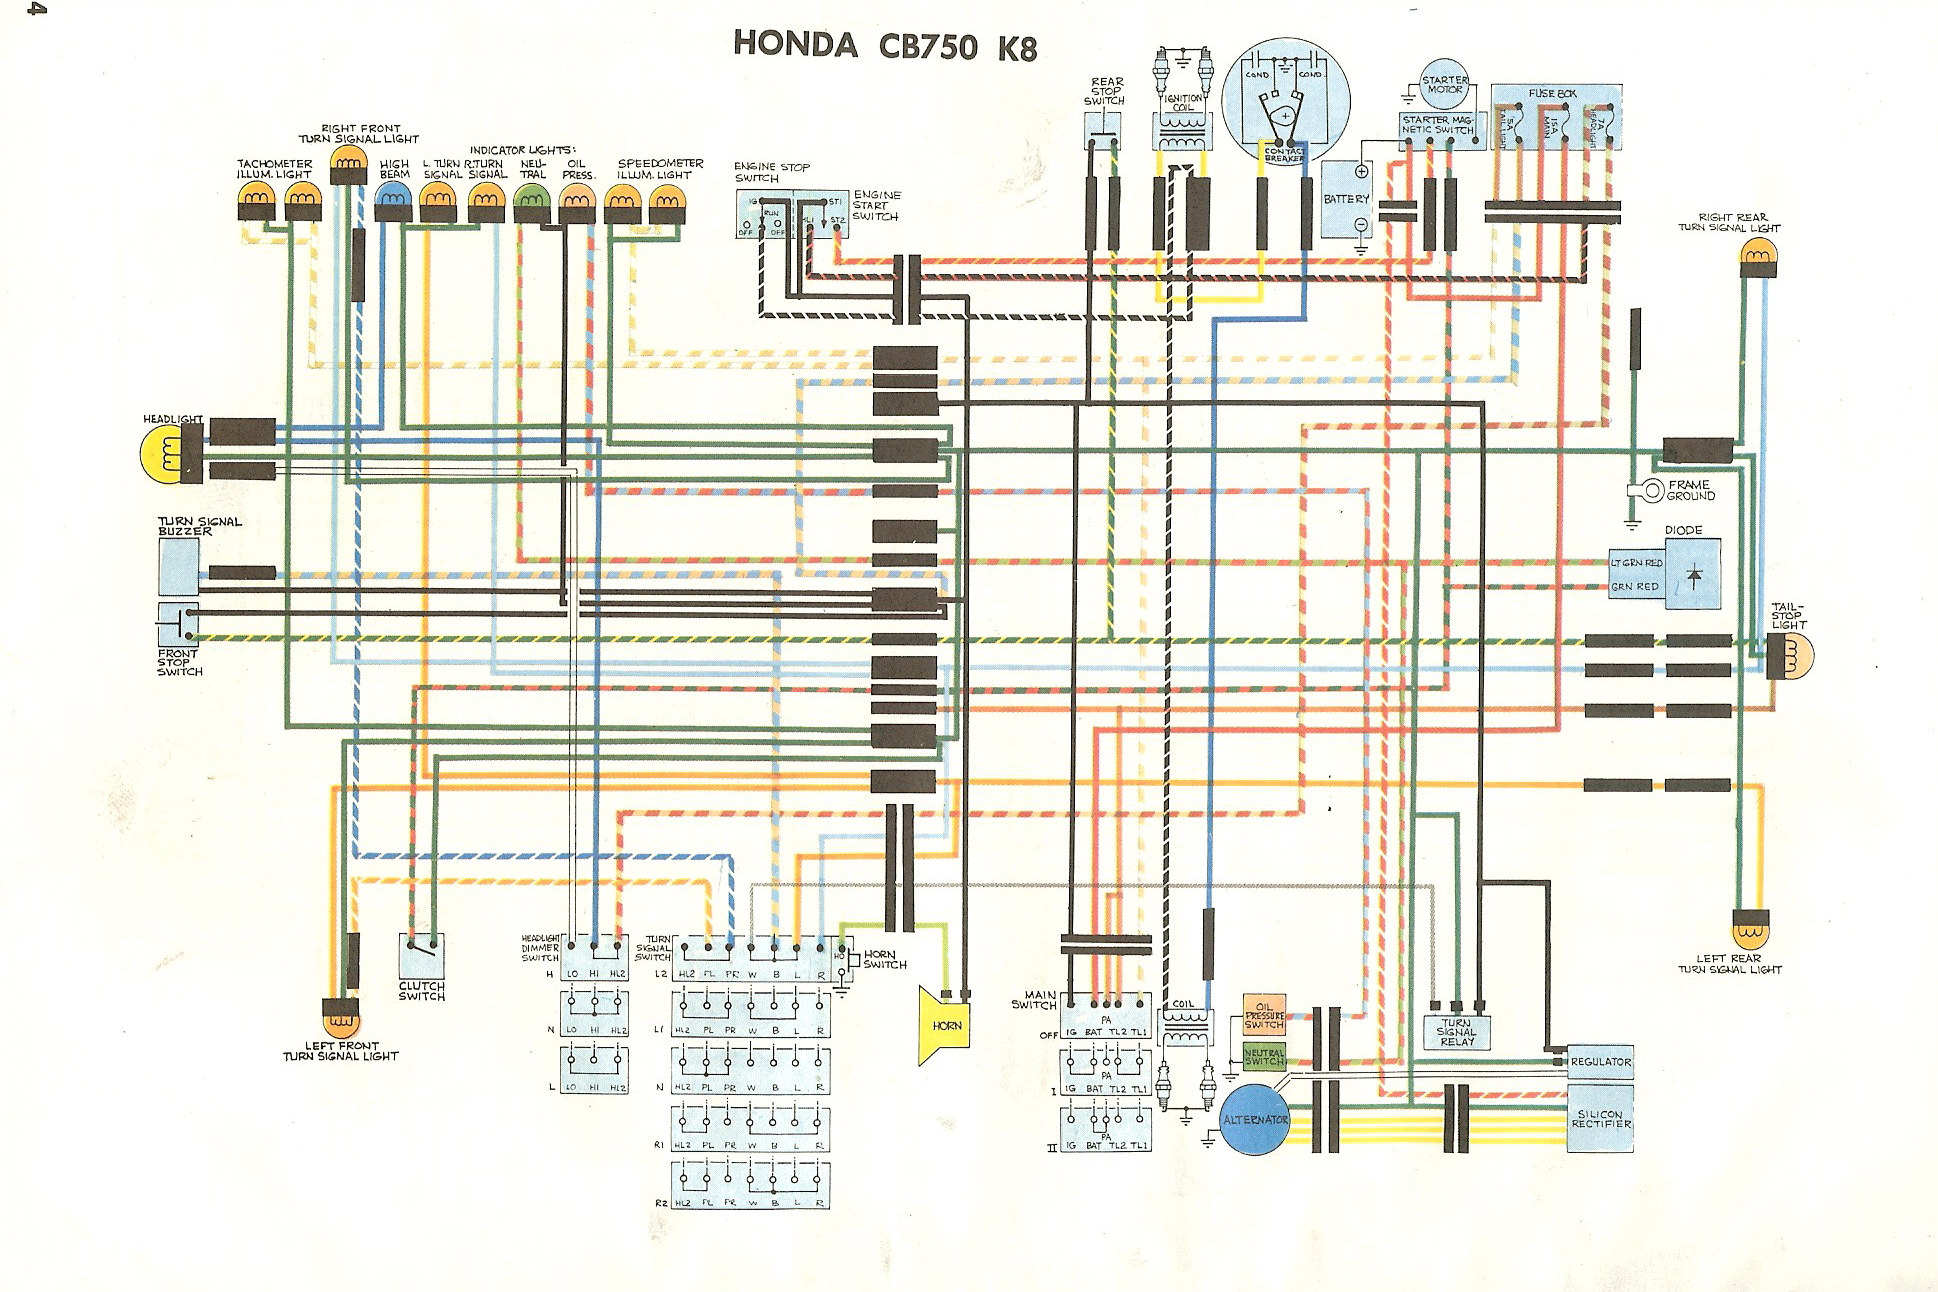 WD750K8 cb750k wiring diagram motorcycle ignition wiring diagram \u2022 wiring  at gsmportal.co